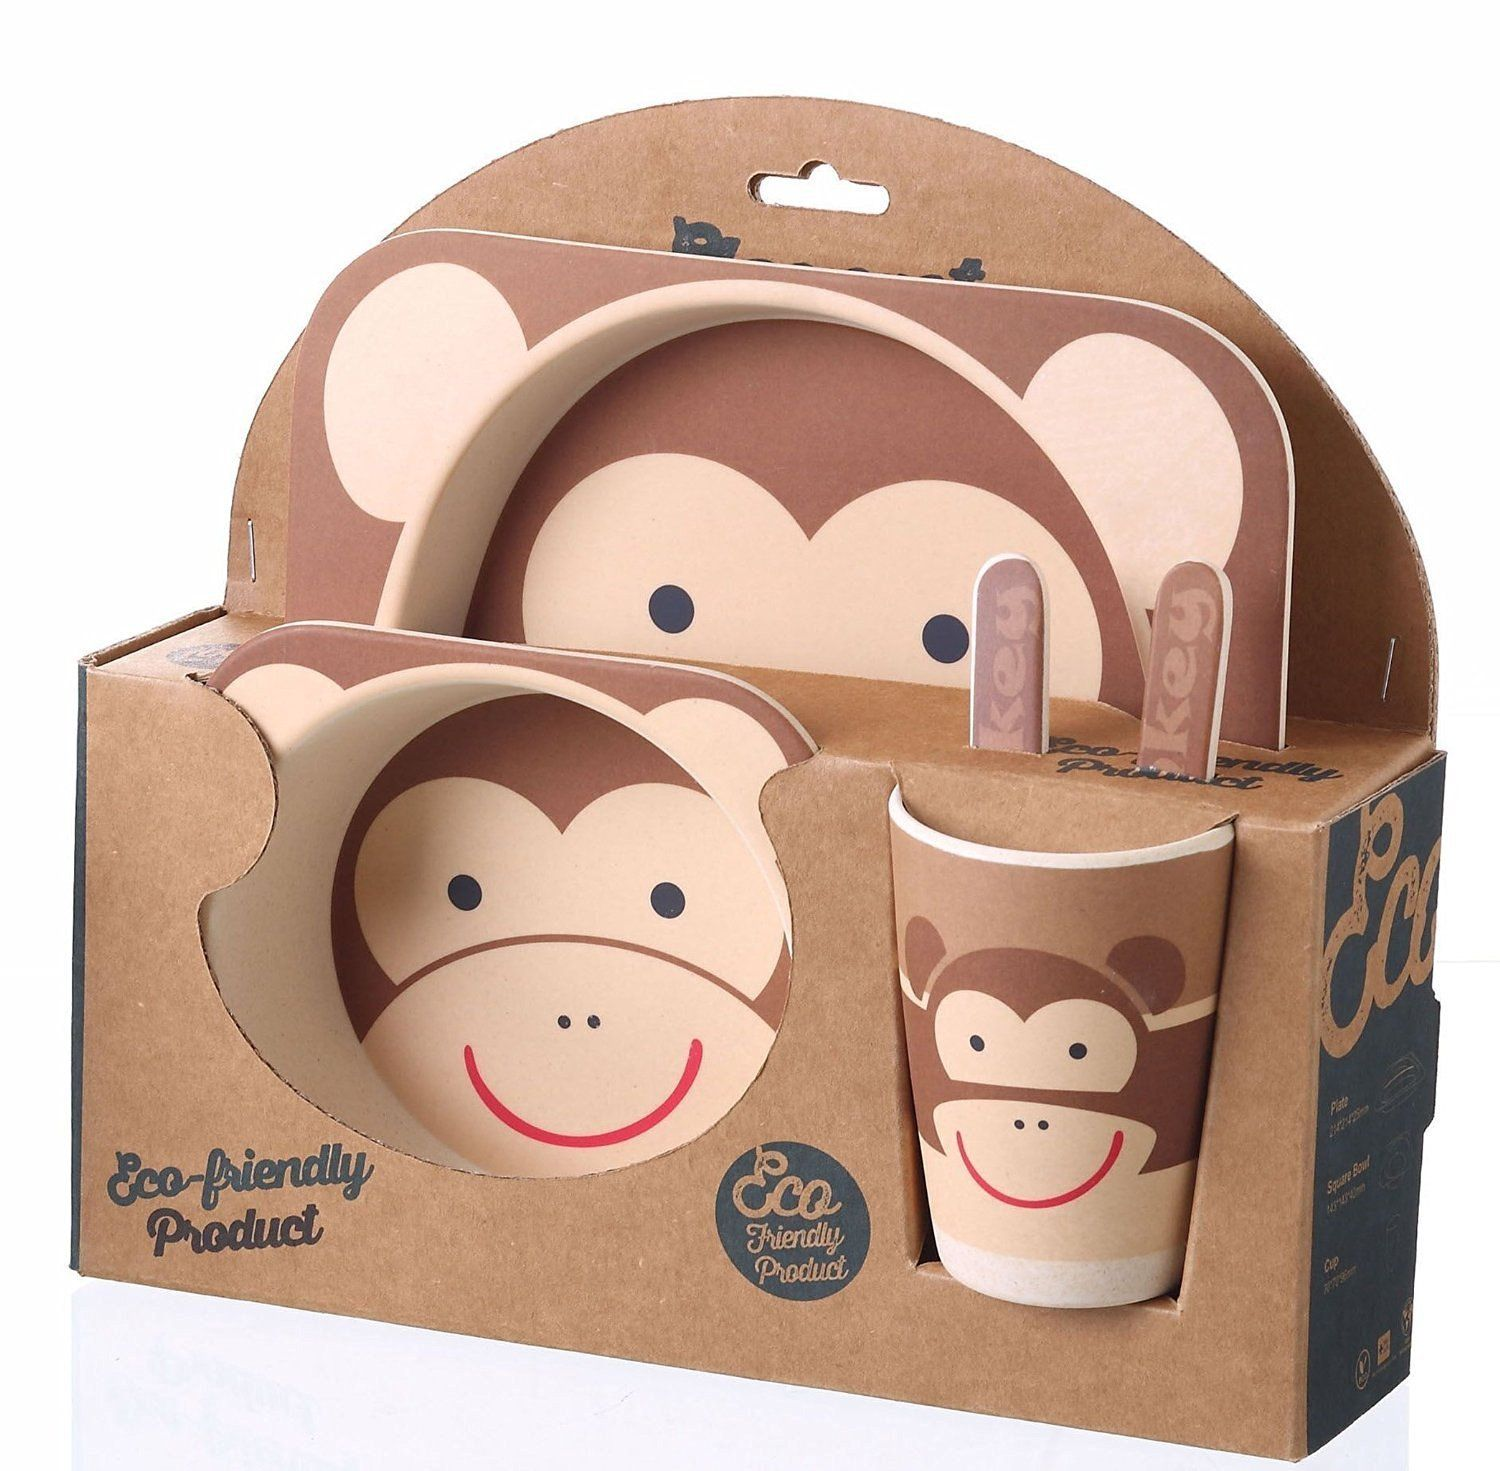 5 Piece Kids Dinnerware Set - Eco-Friendly Bamboo - BPA Free - Monkey Design  sc 1 st  Pinterest & 5 Piece Kids Dinnerware Set - Eco-Friendly Bamboo - BPA Free ...